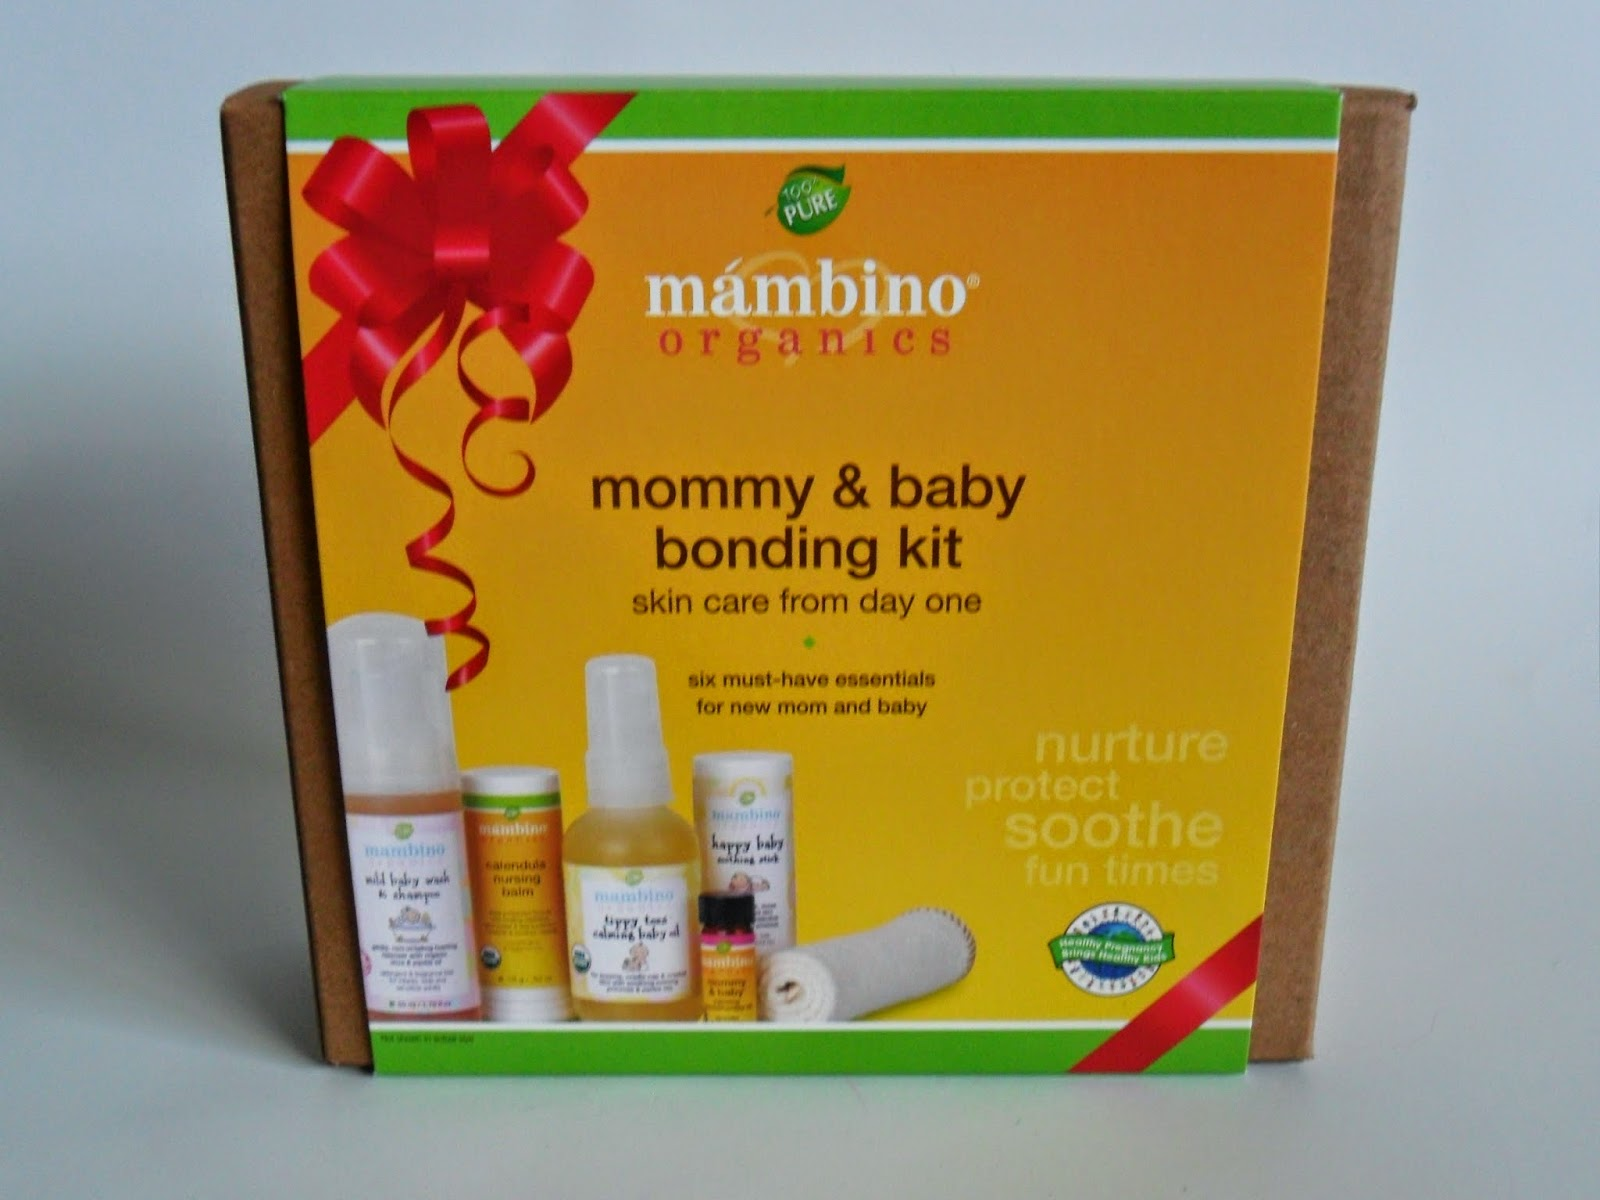 Mommy and Baby Bonding Kit, Mambino Organics.  Review  (Blu me away or Pink of me Event)